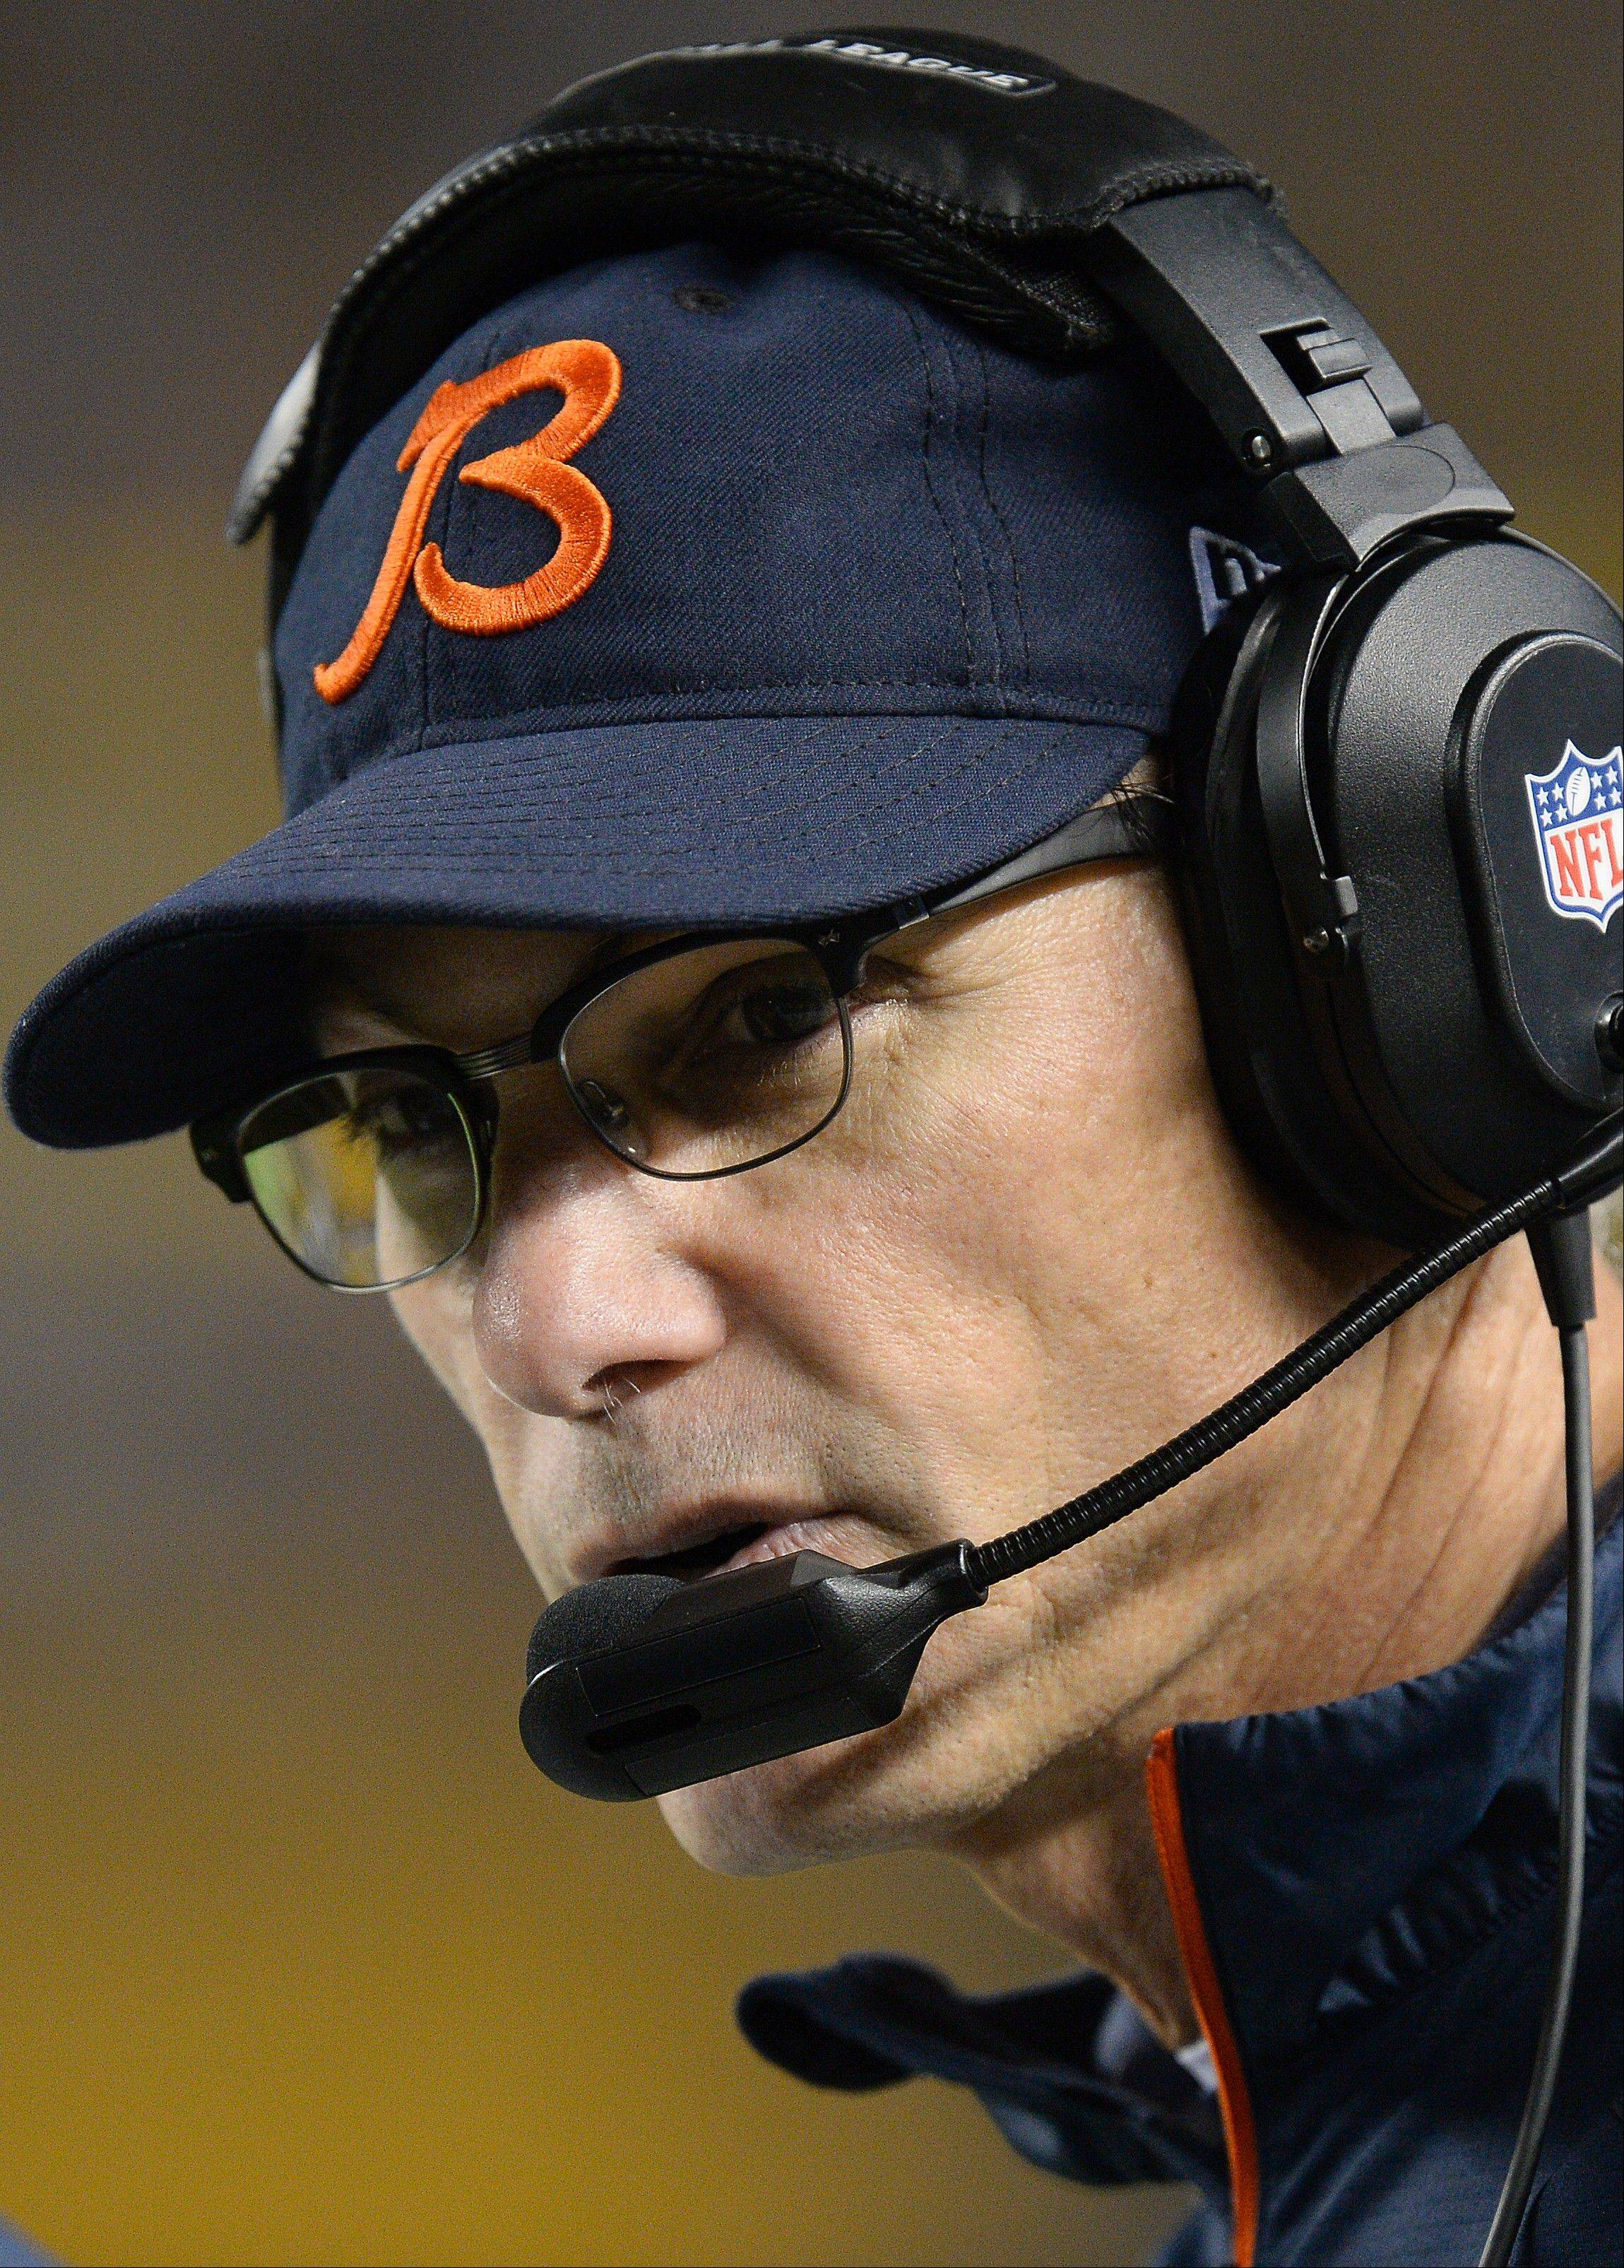 Chicago Bears head coach Marc Trestman on the sideline during the first quarter of an NFL football game against the Pittsburgh Steelers on Sunday, Sept. 22, 2013, in Pittsburgh. The Bears won 40-23. (AP Photo/Don Wright)